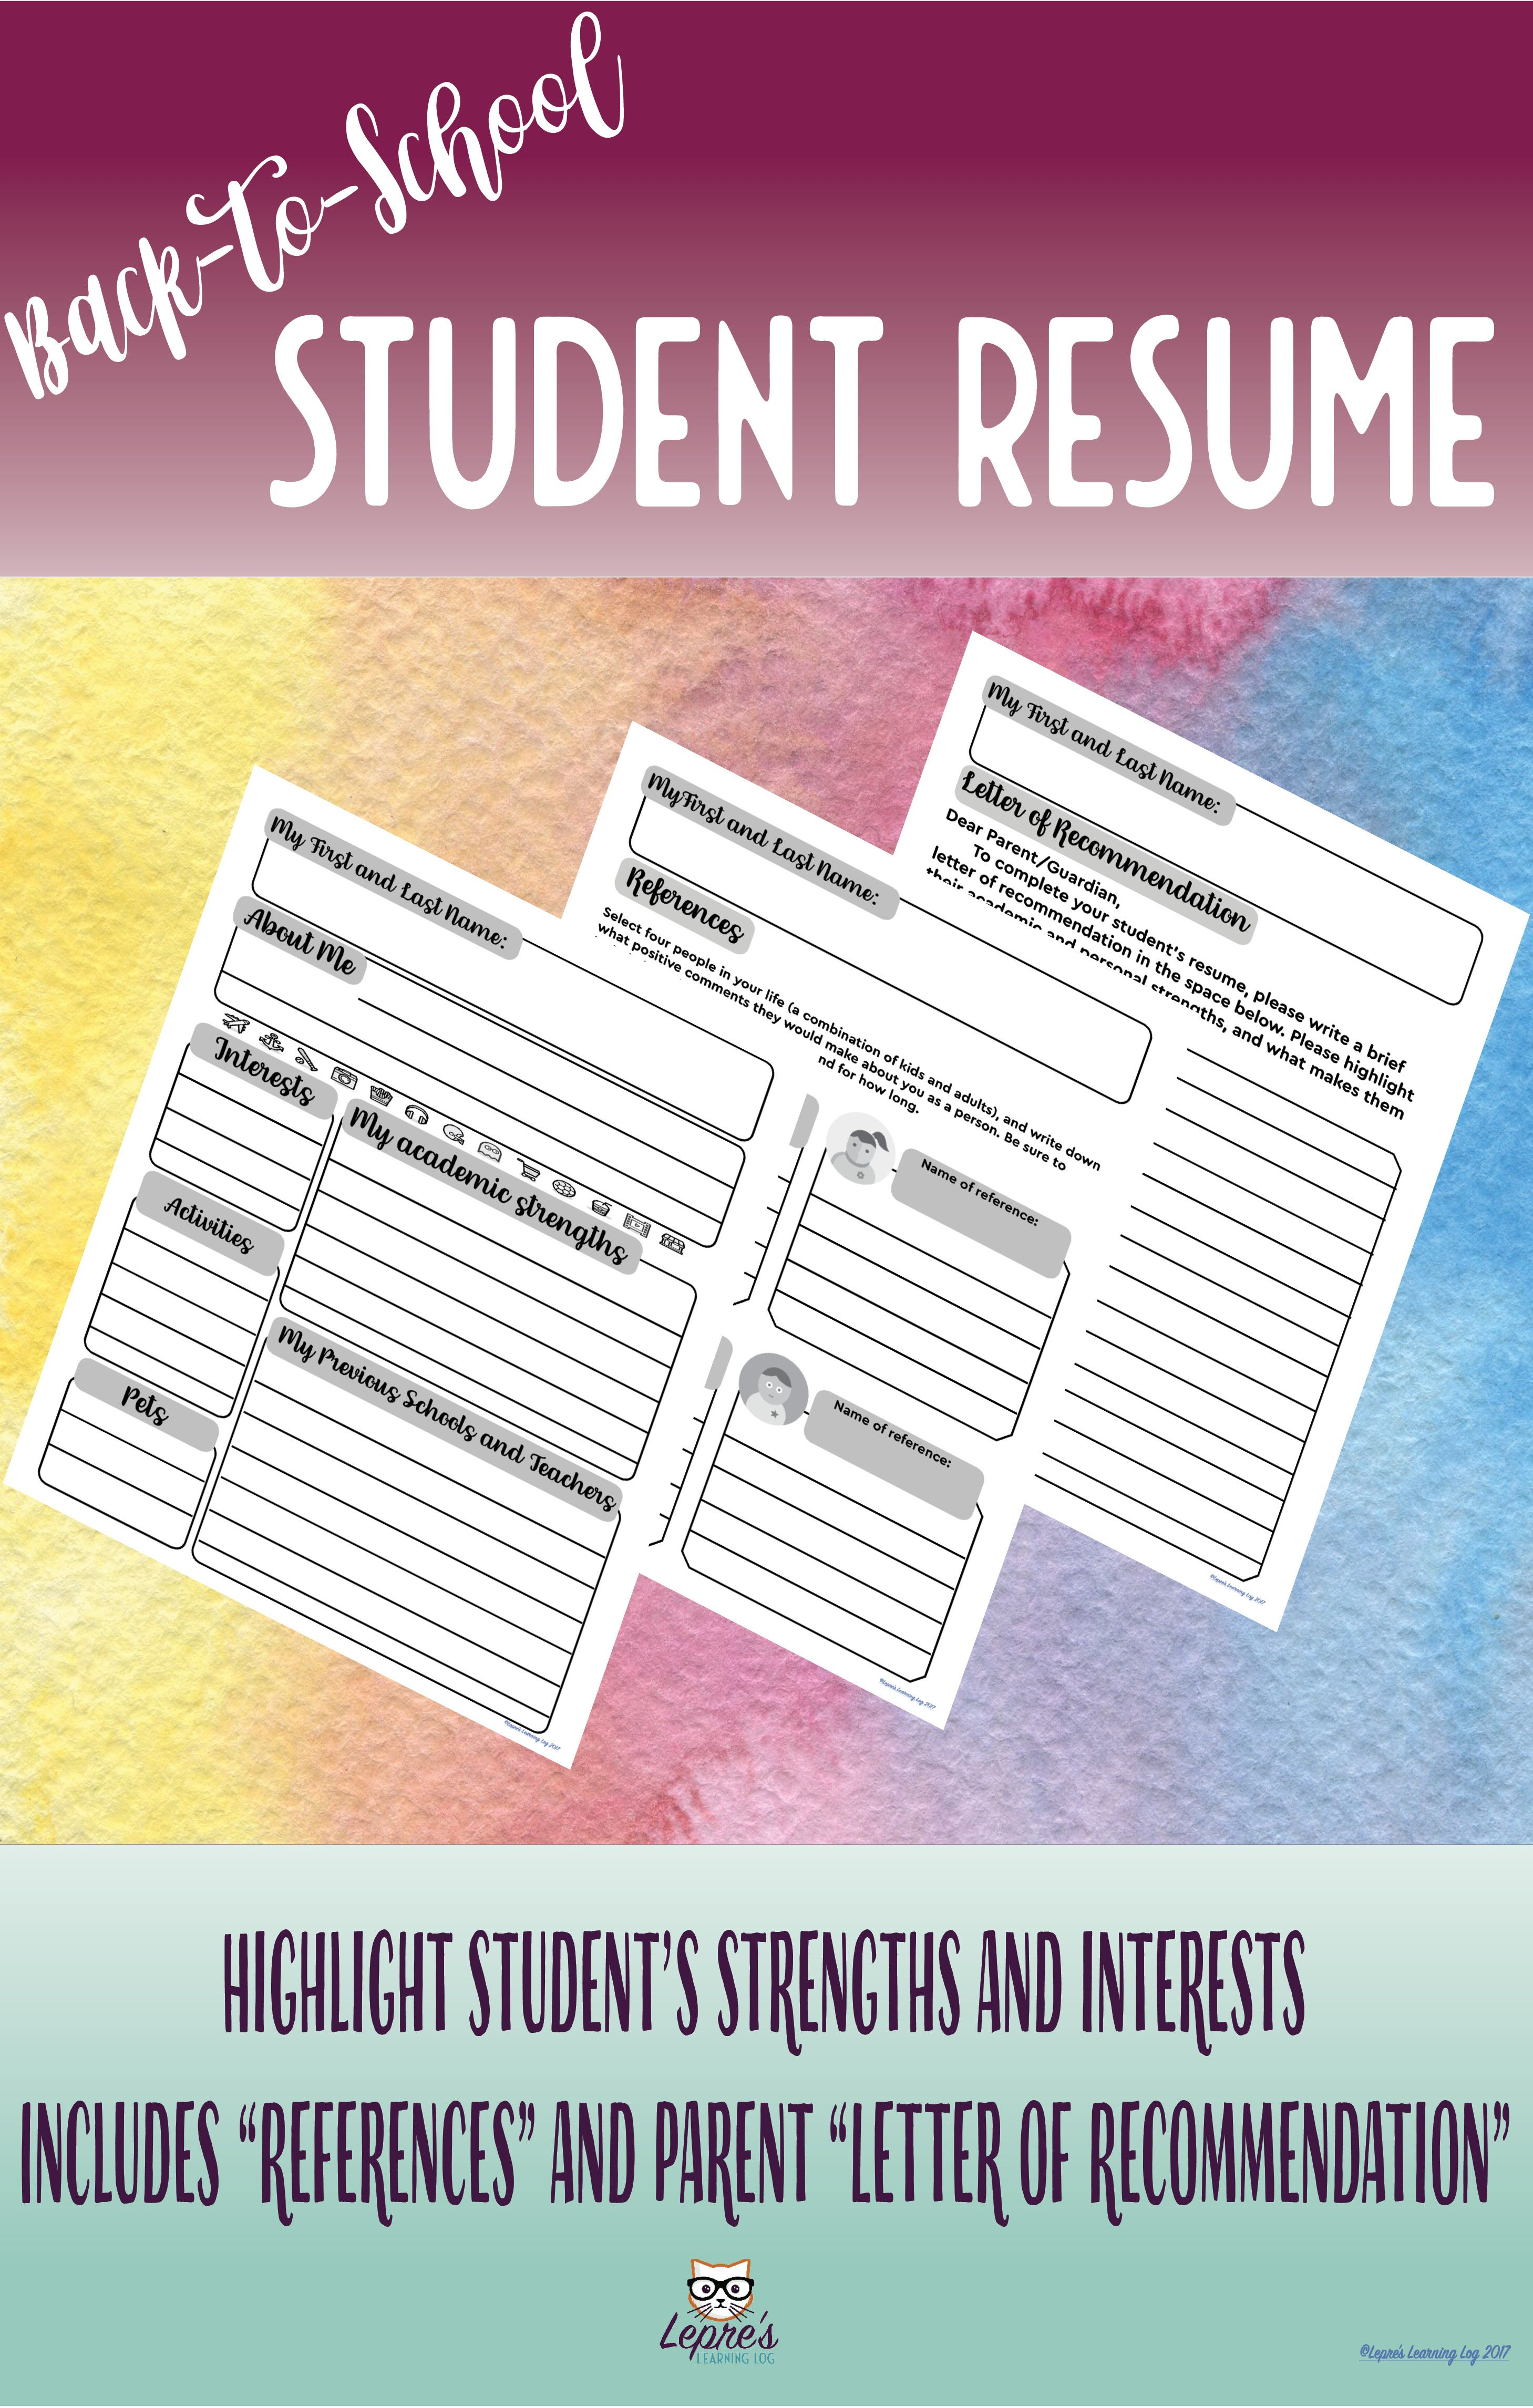 Backtoschool Student Resume perfect for the first day